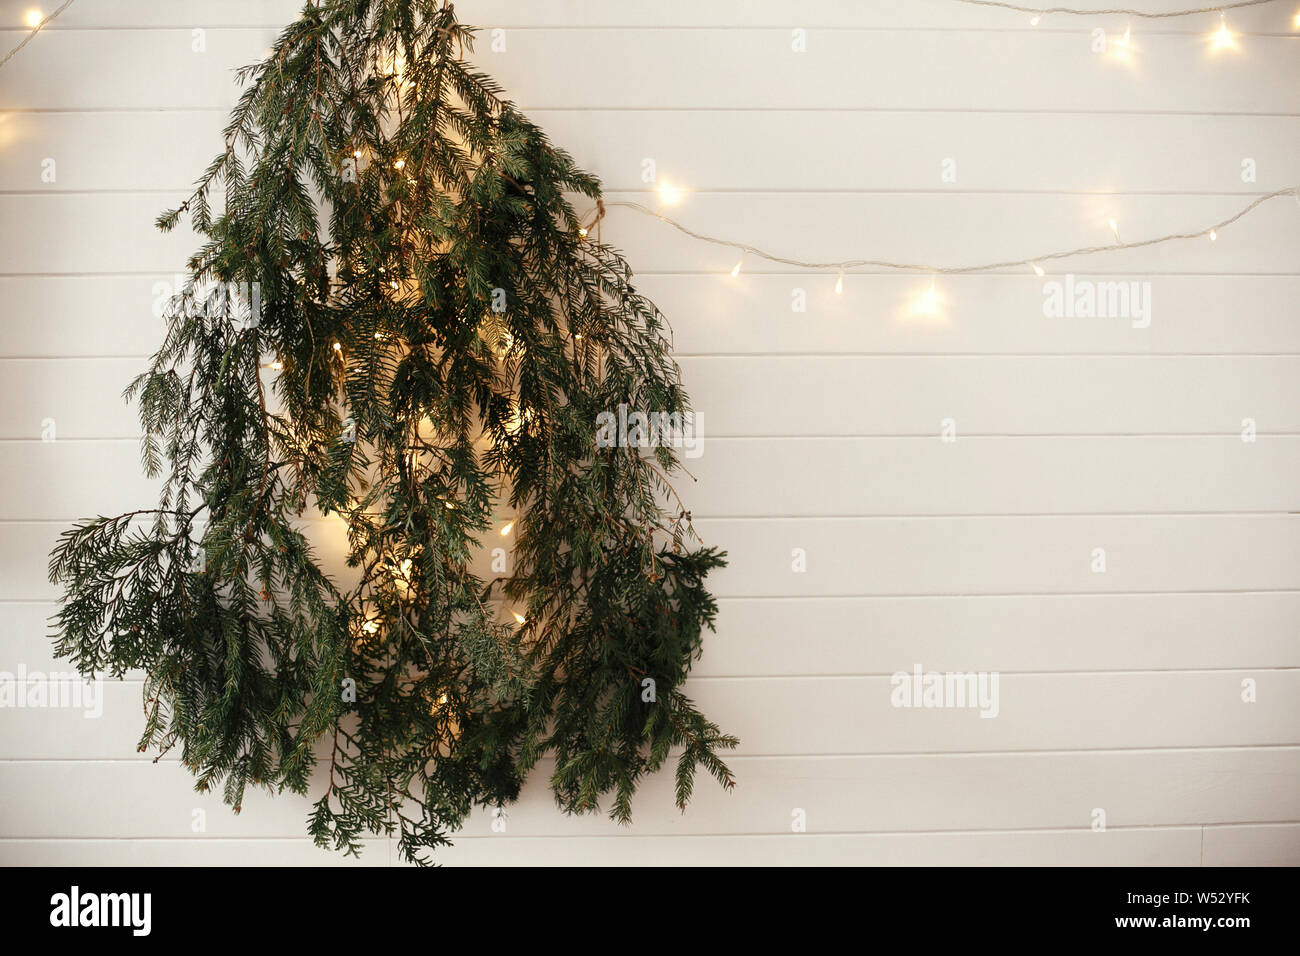 Stylish Modern Christmas Tree Made Of Fir Branches Hanging On White Wall With Festive Garland Light Eco Zero Waste Decoration Of A Room For Christma Stock Photo Alamy